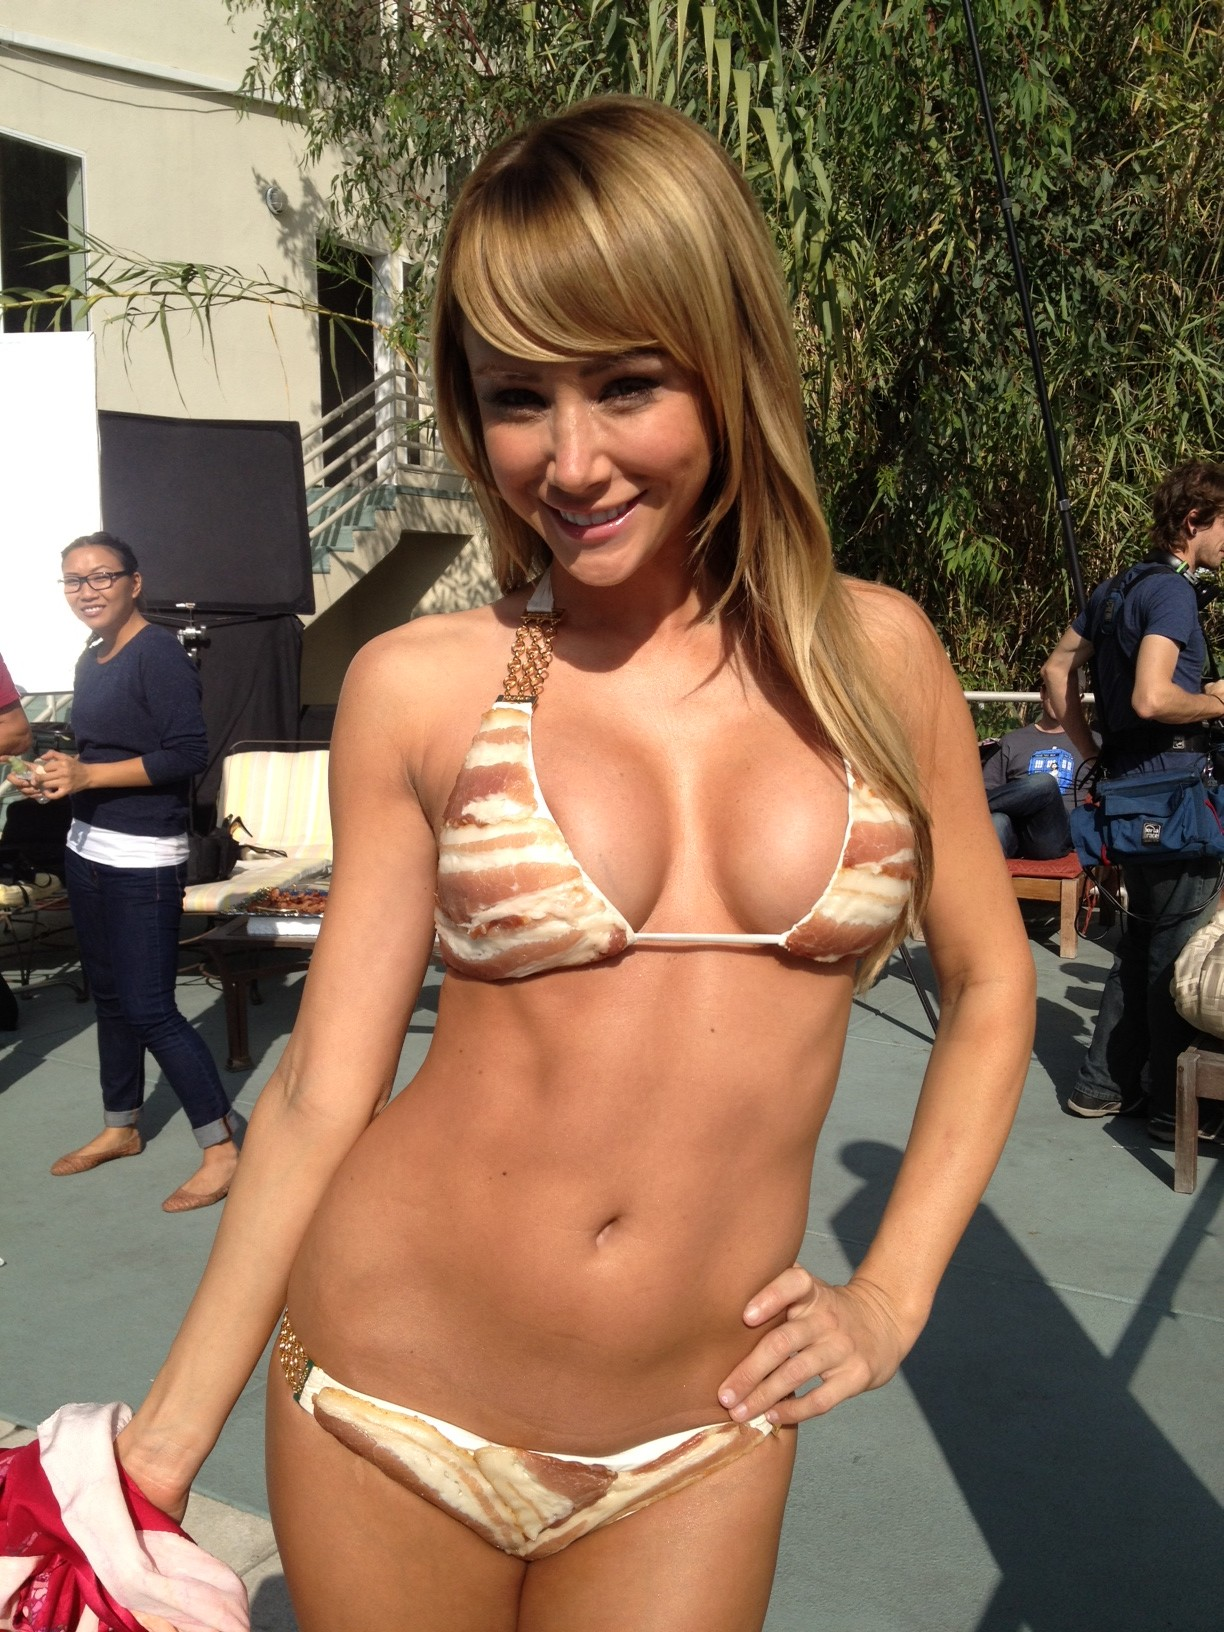 Sara Underwood's Bacon Bikini! LET BACON BE BACON! With ...